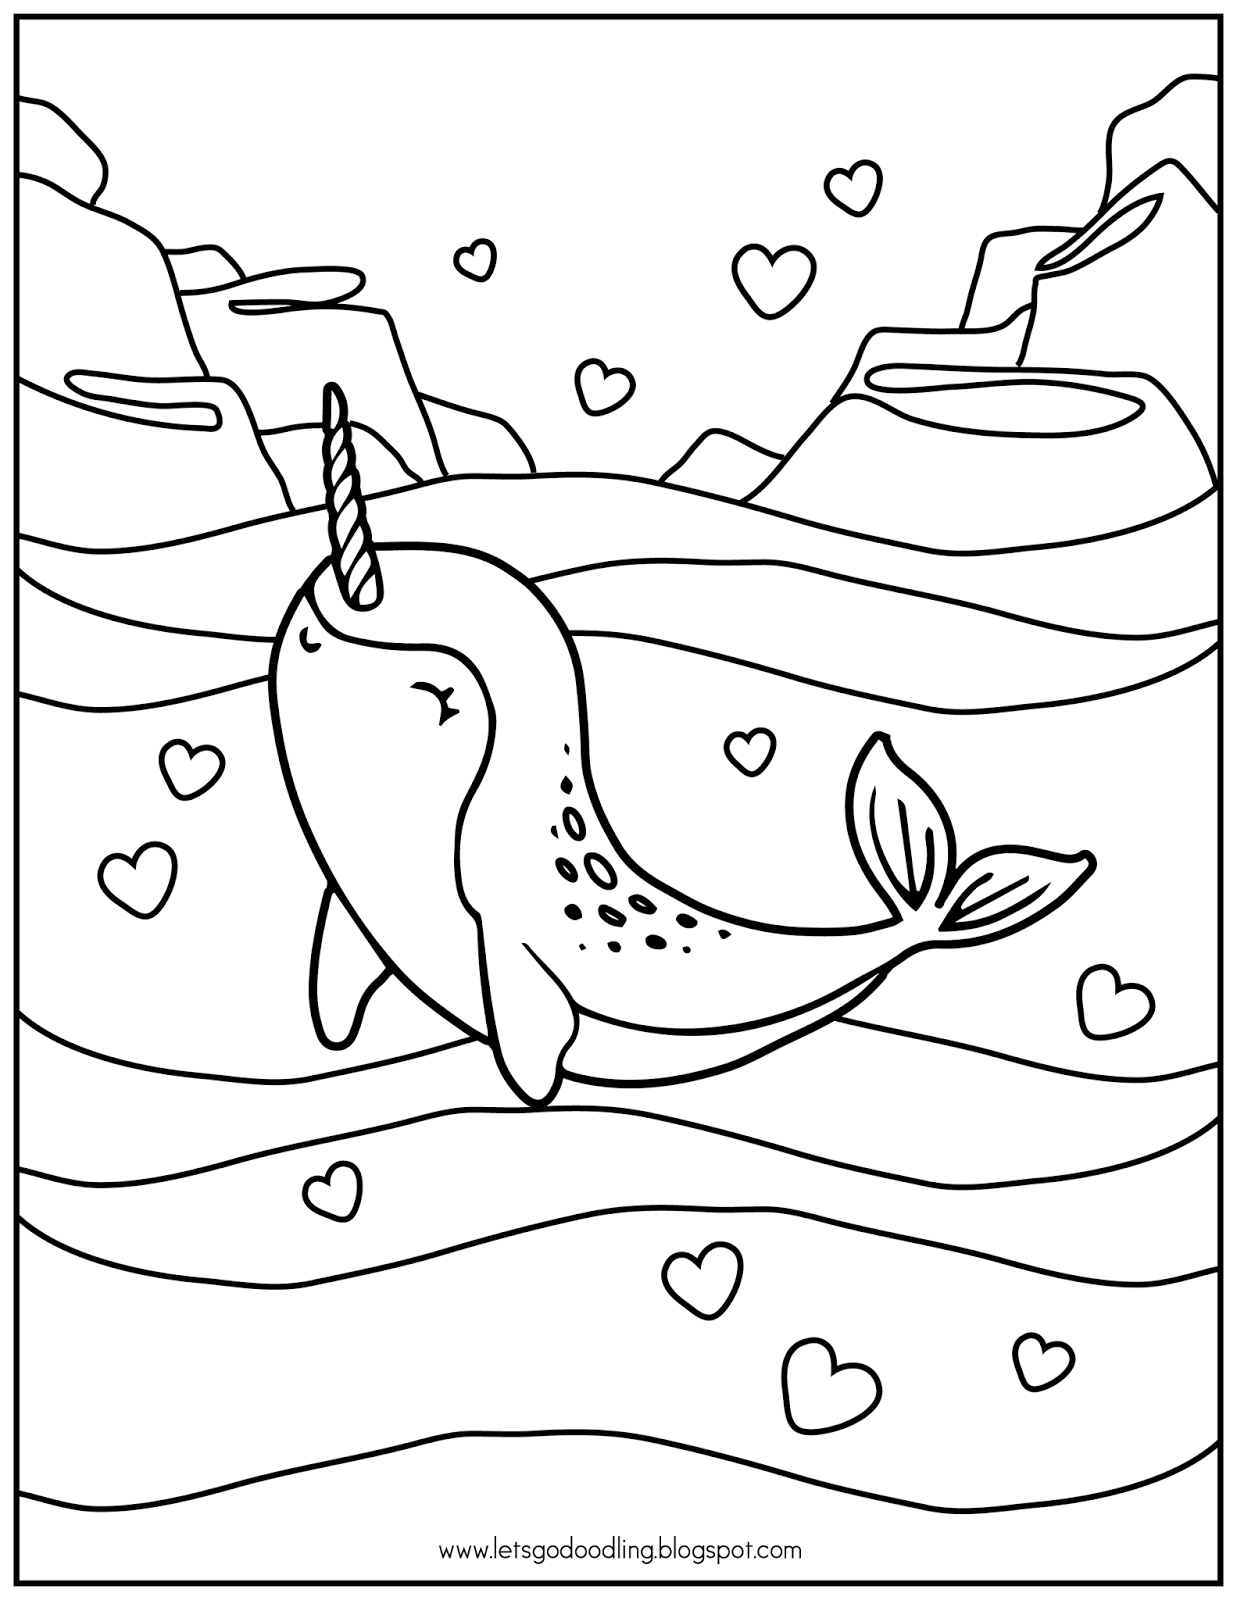 FREE Printable Coloring Page: Narwhal